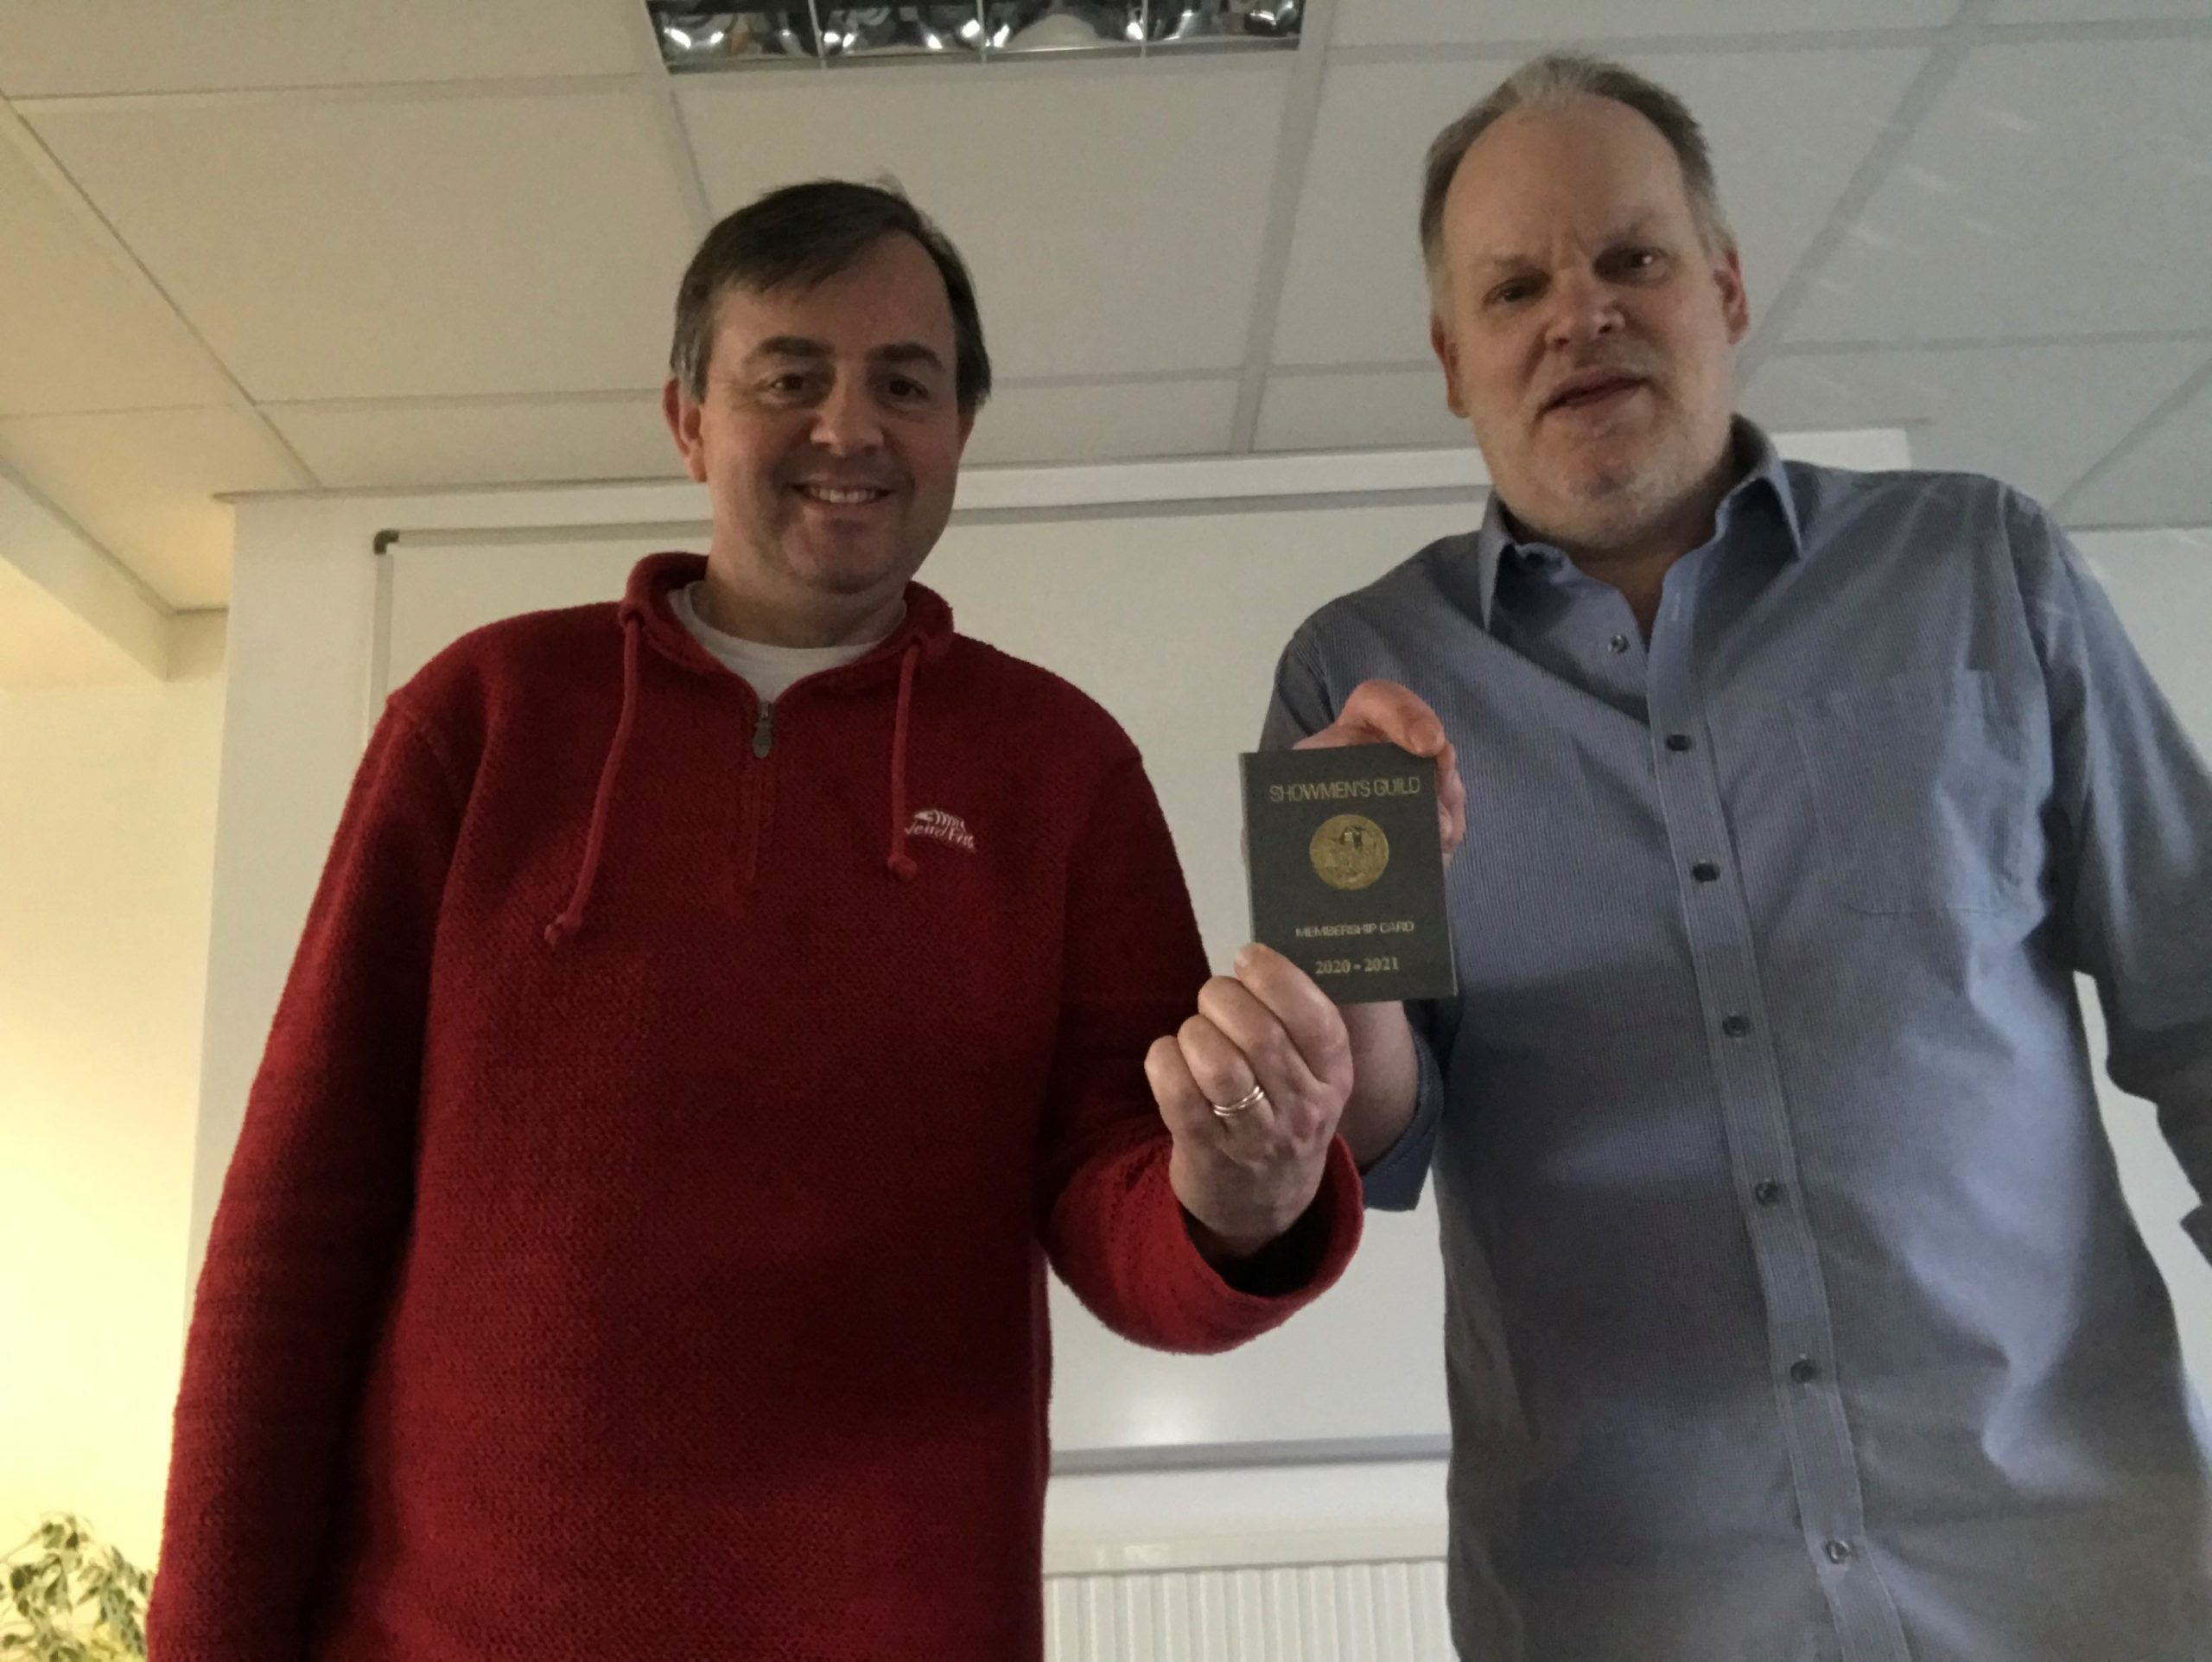 Oliver Burt and John Lowe holding their Showmen's Guild Membership Card